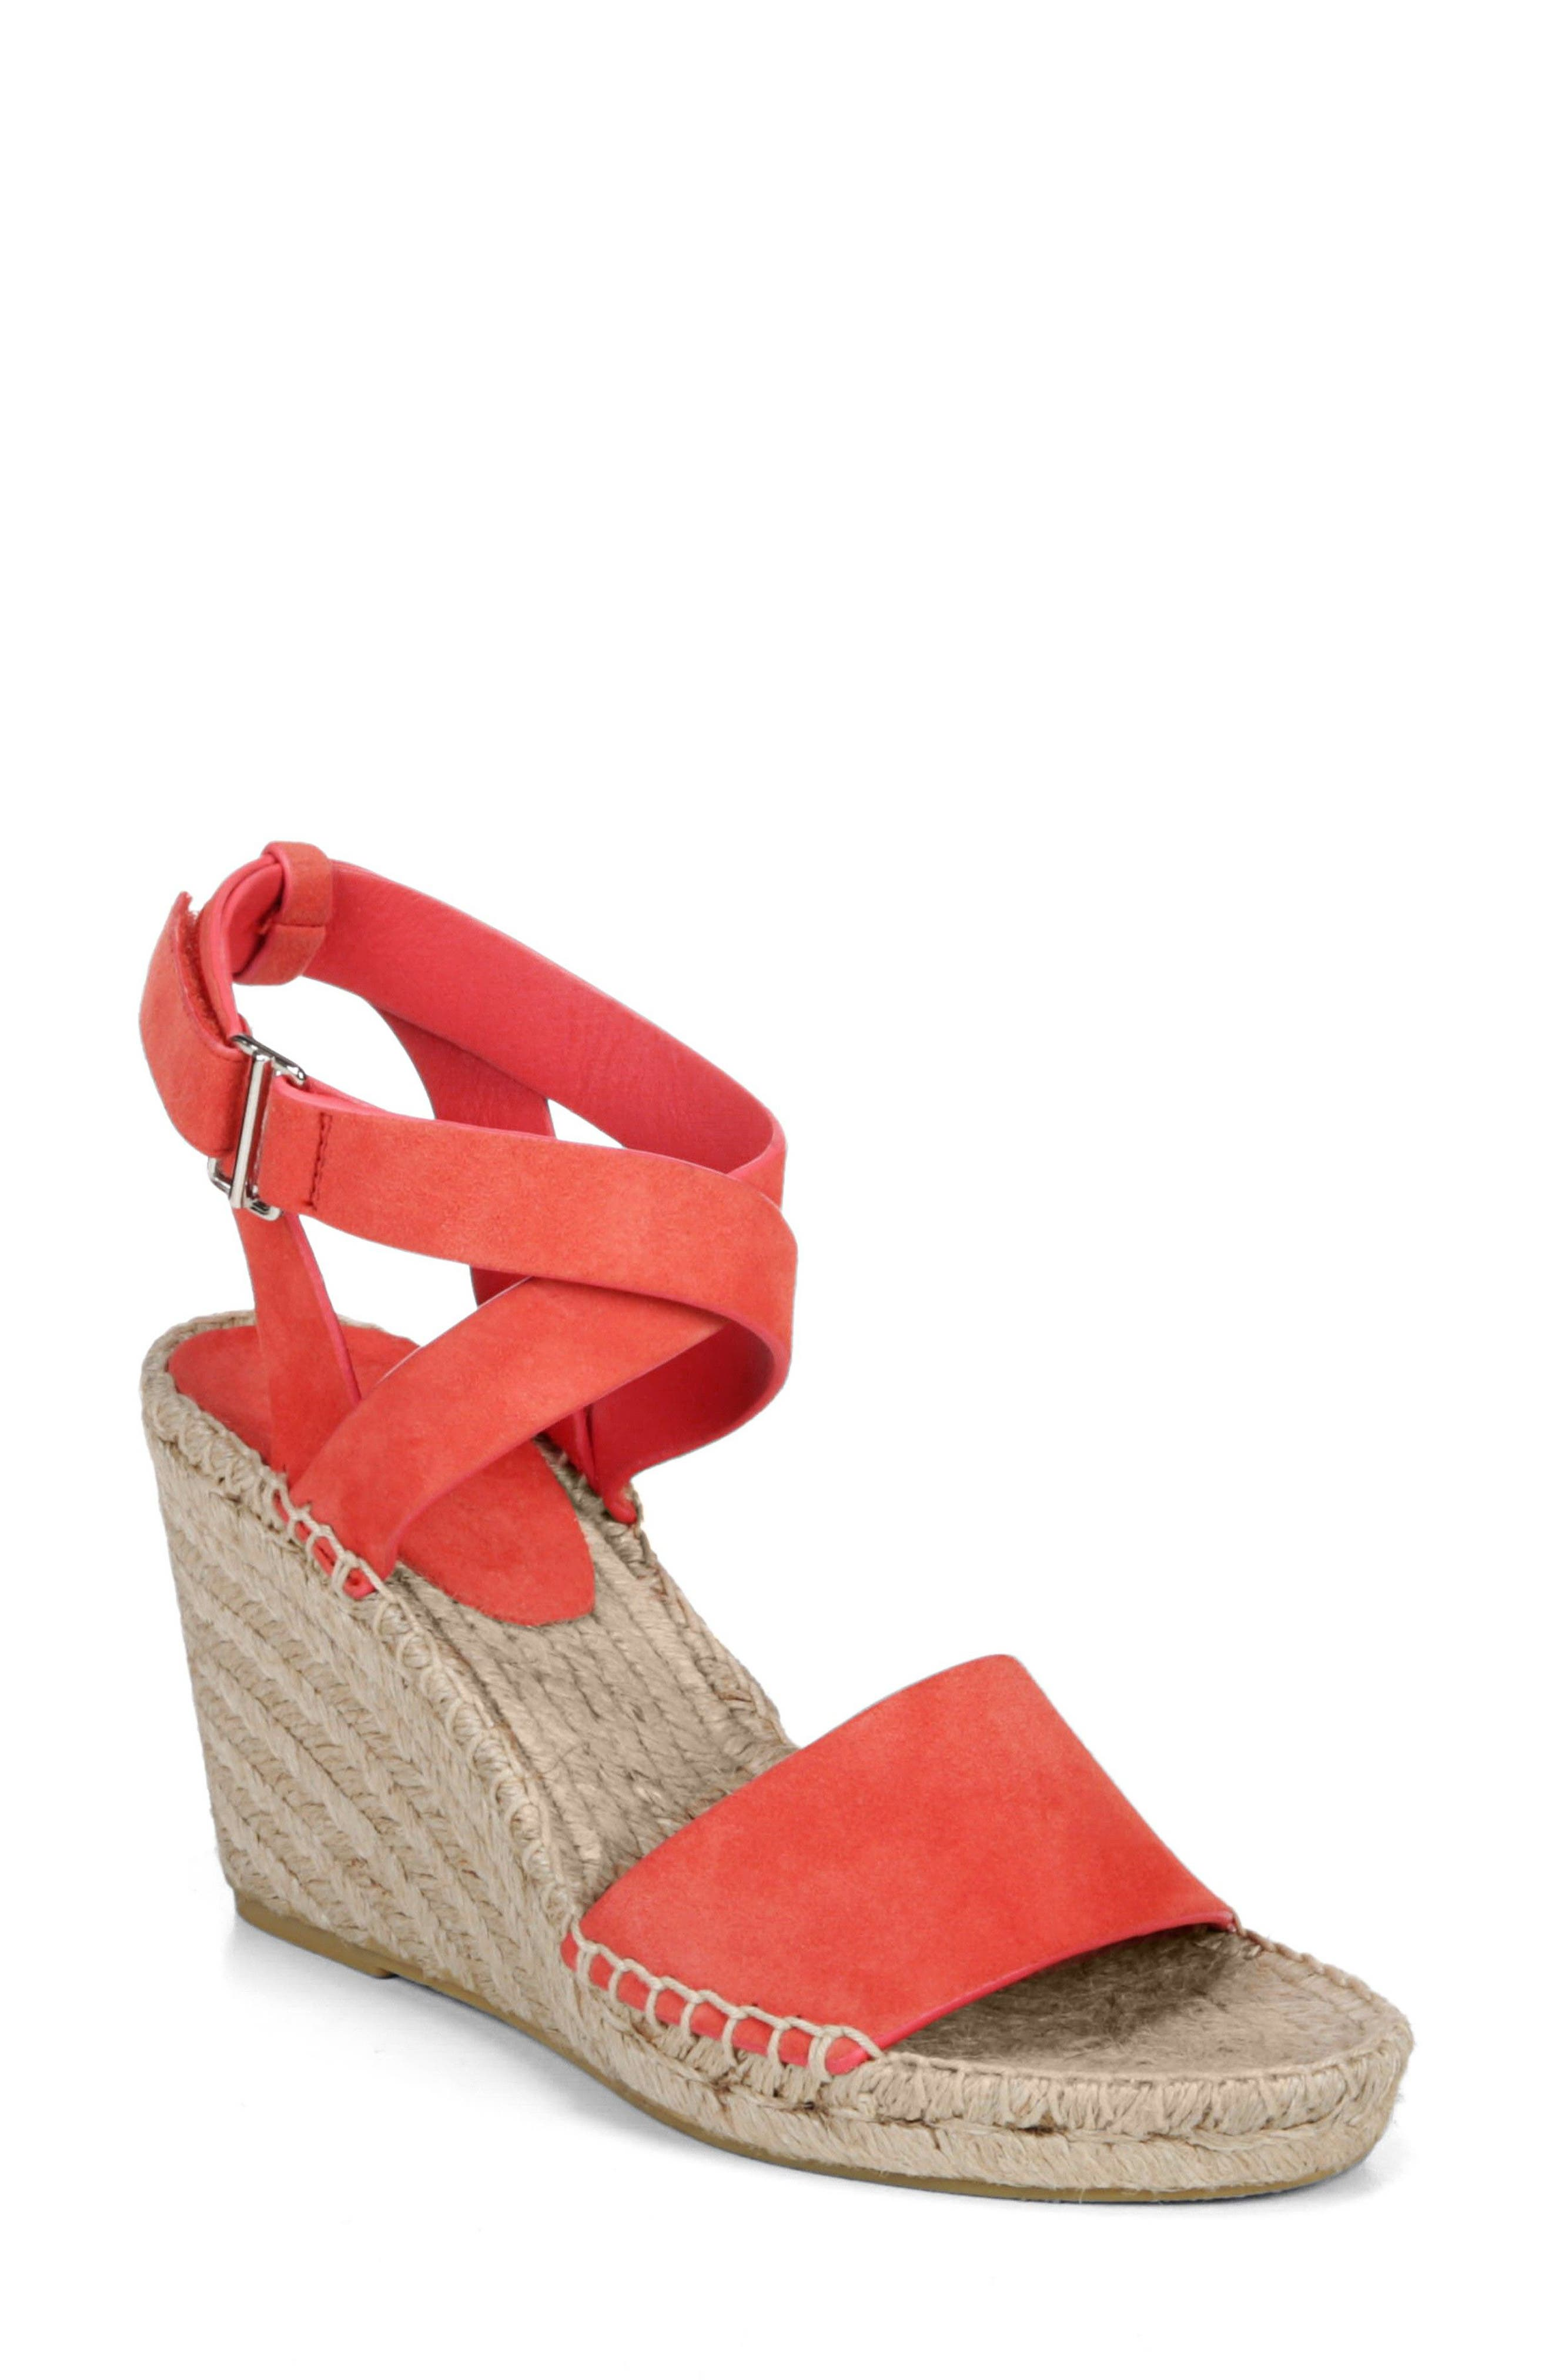 Nevada Espadrille Wedge Sandal,                             Main thumbnail 1, color,                             Poppy Red Suede